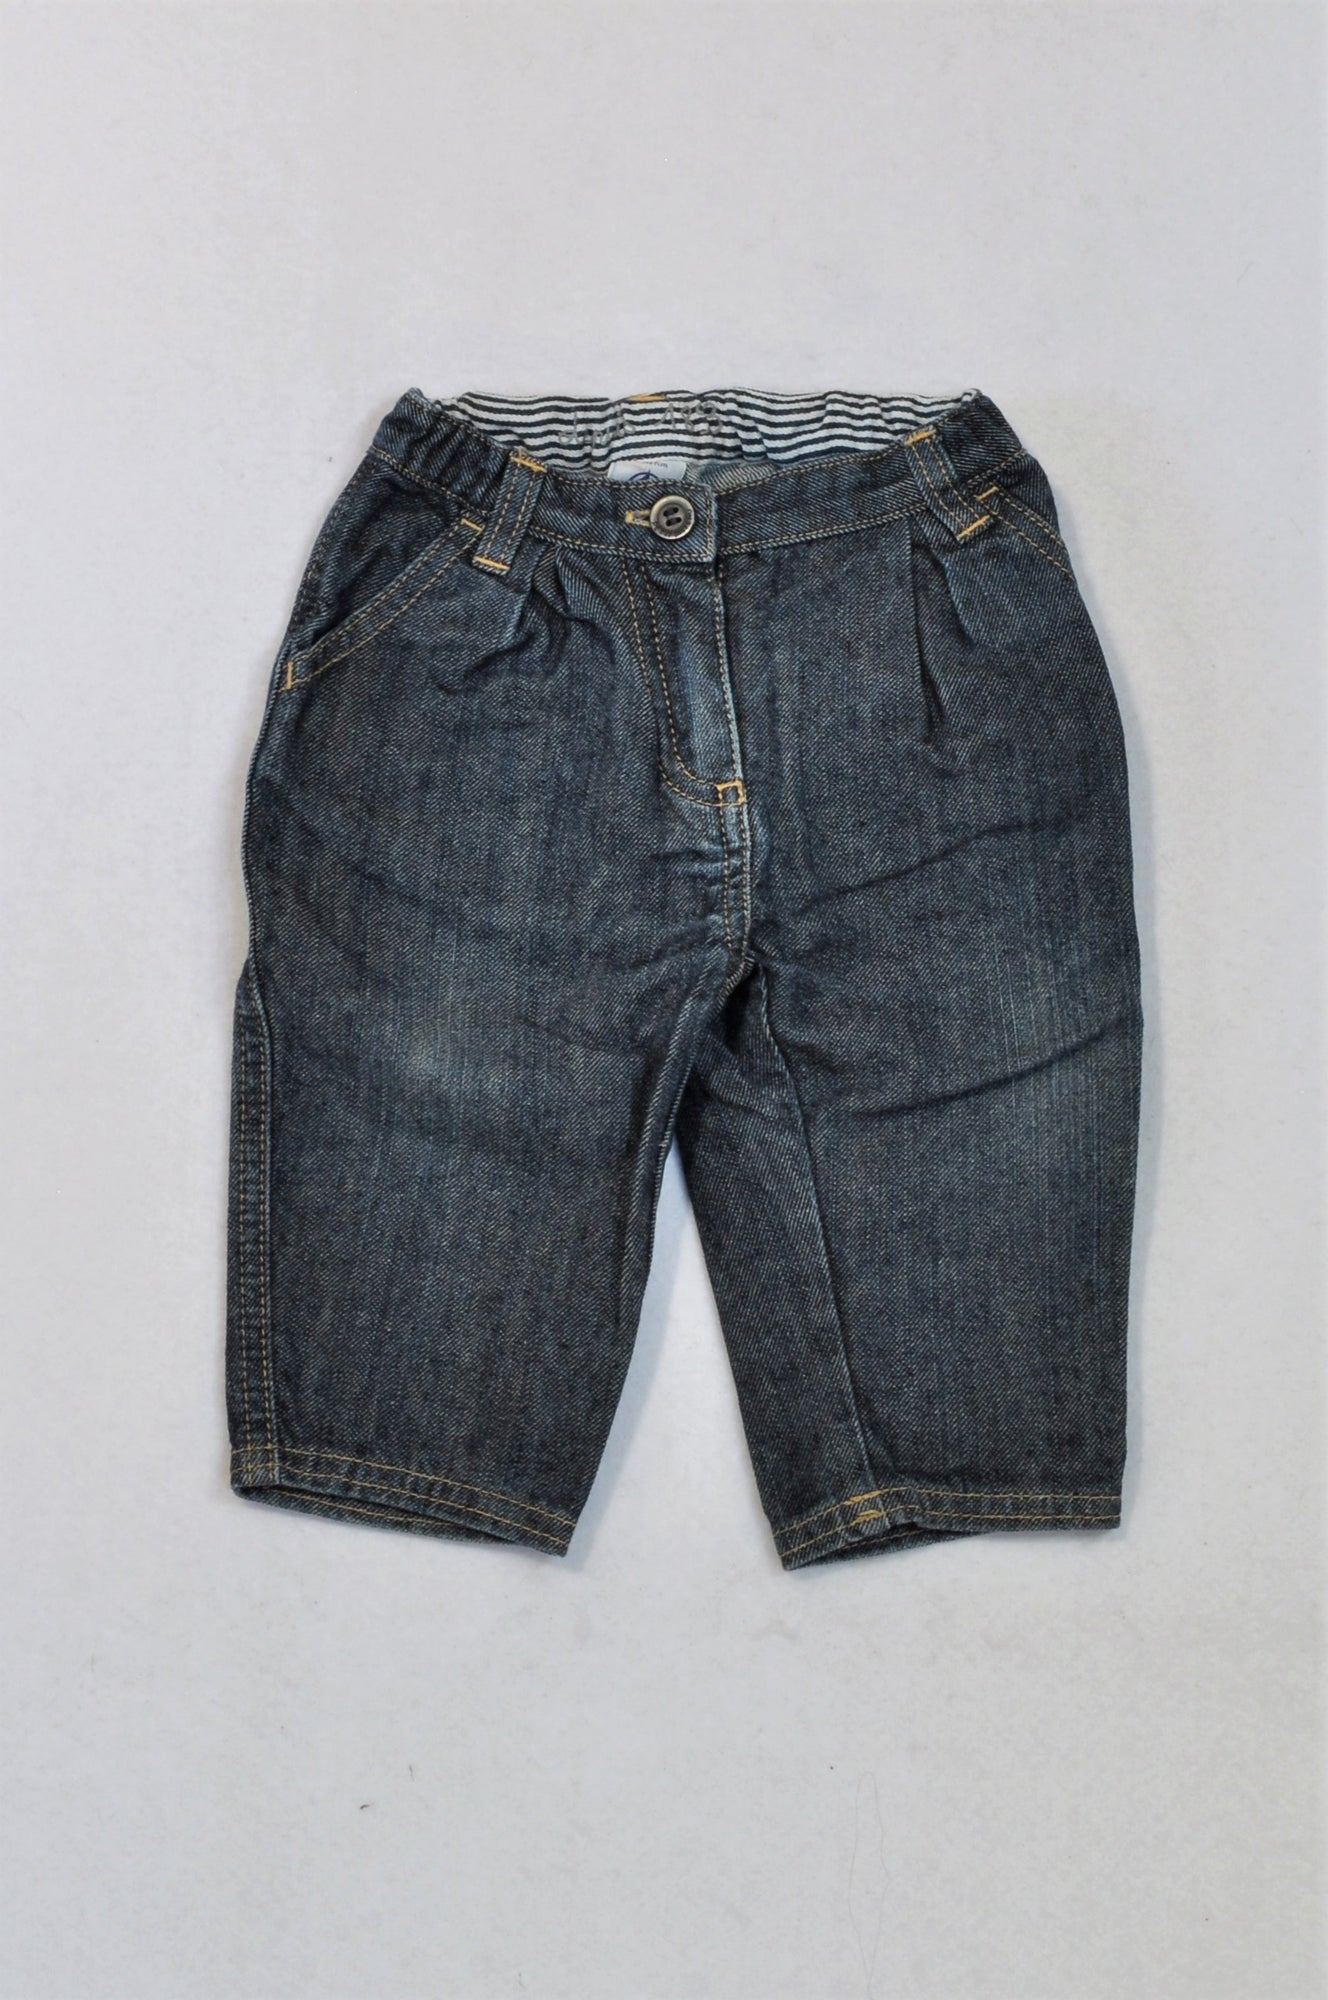 Petit Bateau Dark Washed, Light Stitched Jeans Boys 3-6 months